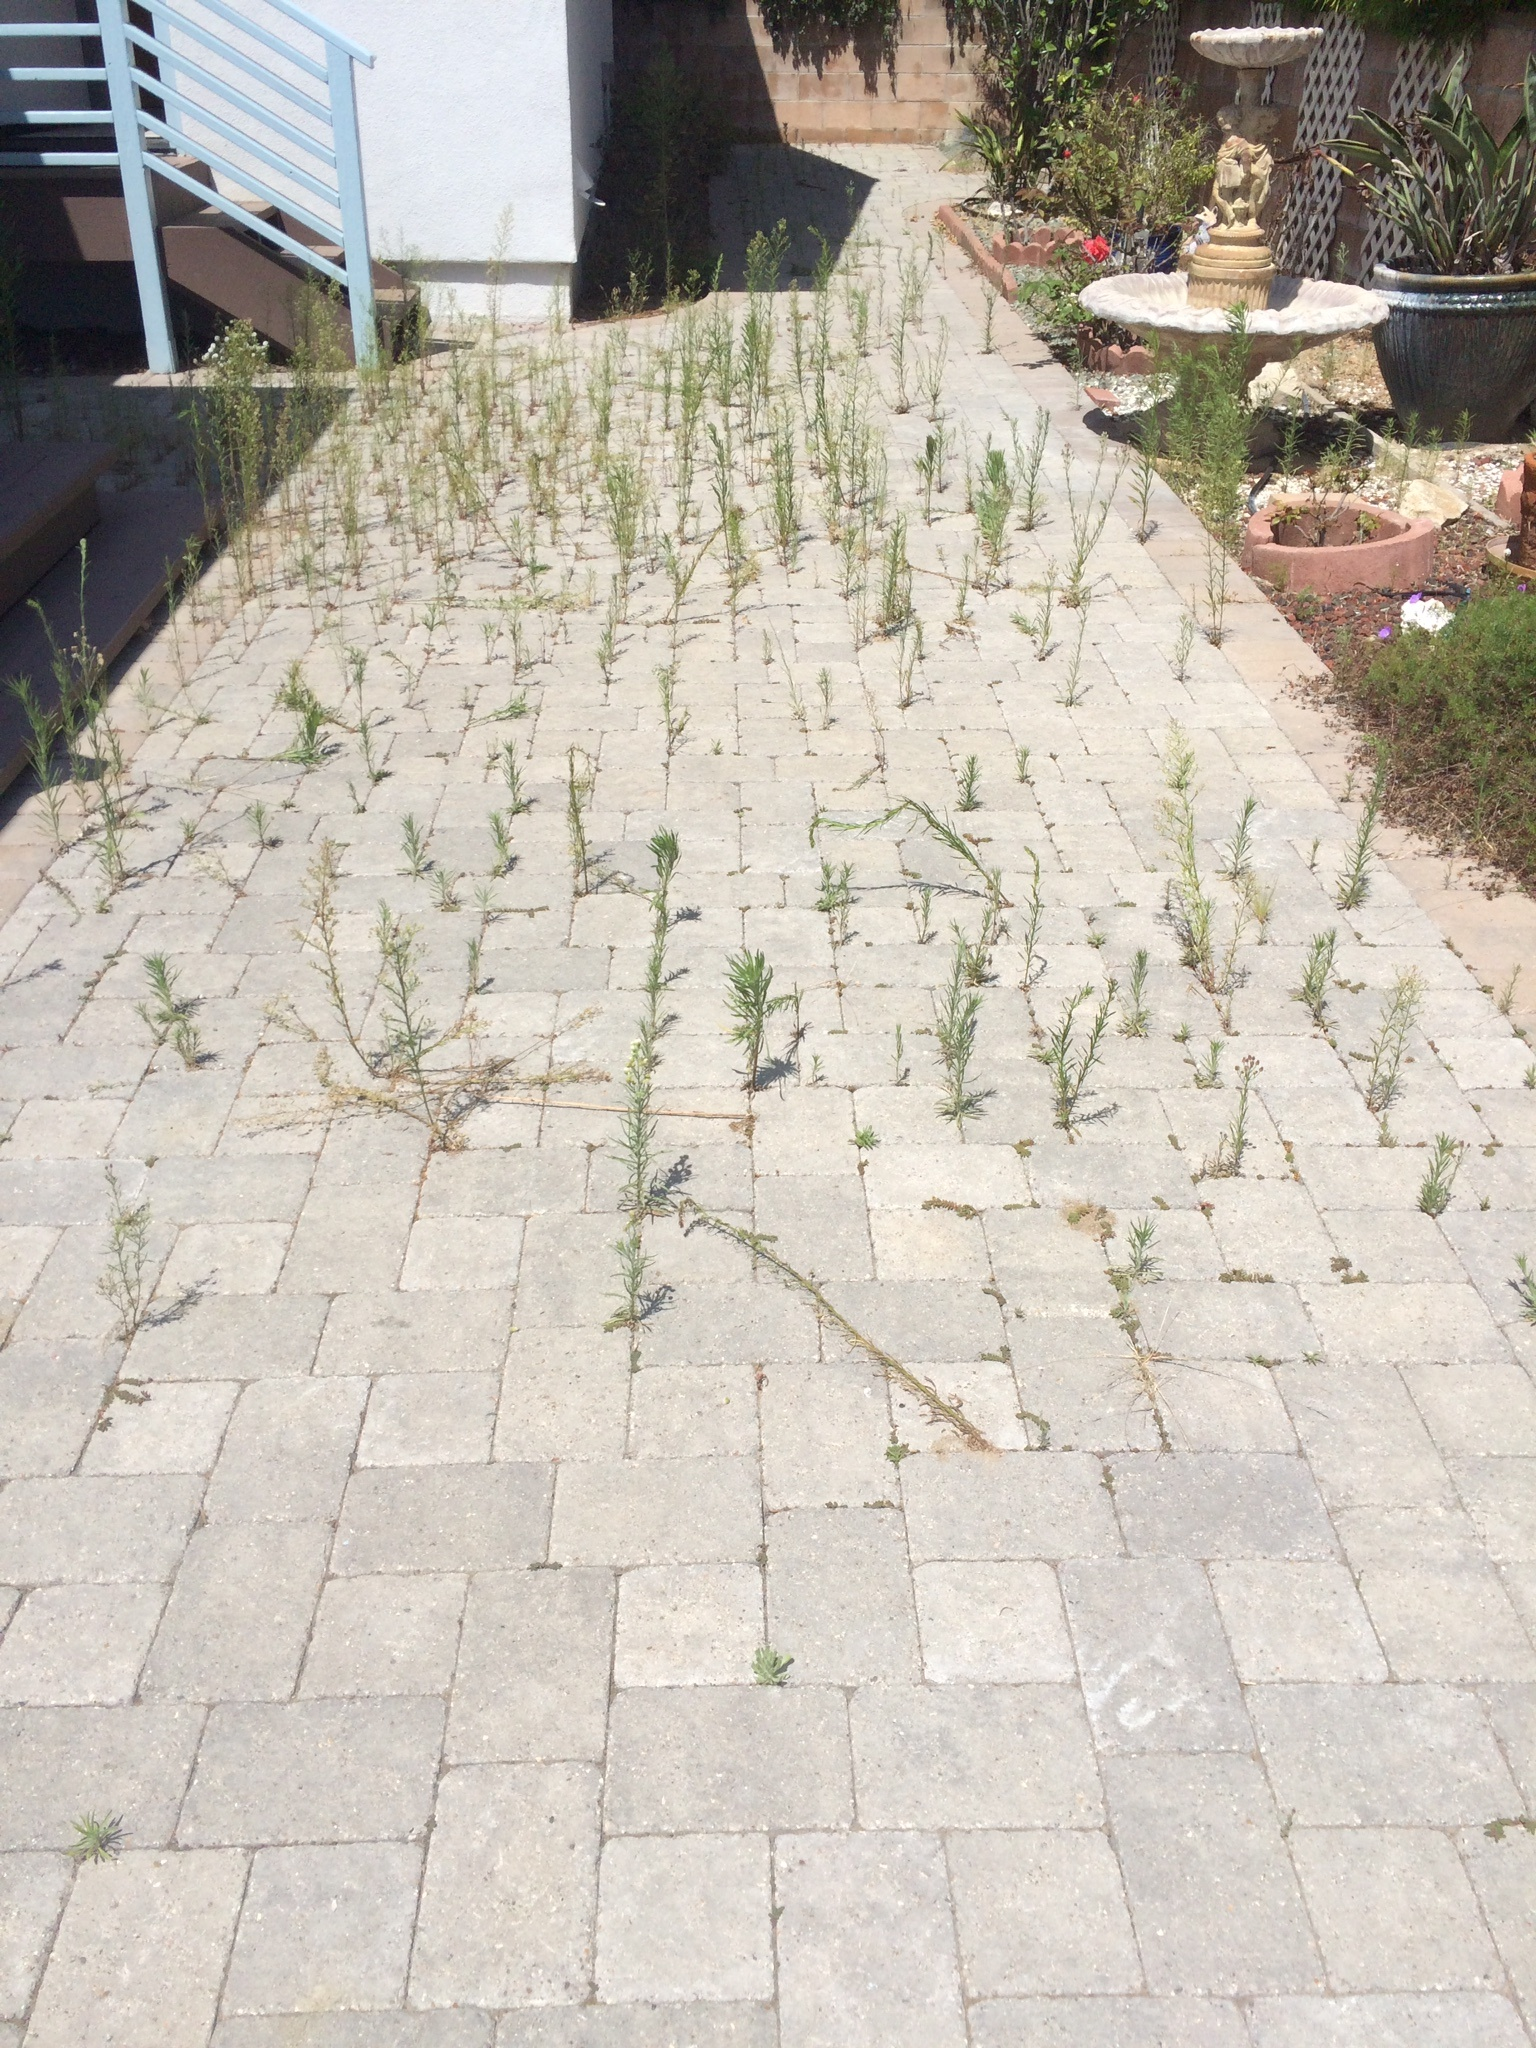 how_to_remove_weeds_from_paver_joints.jpg